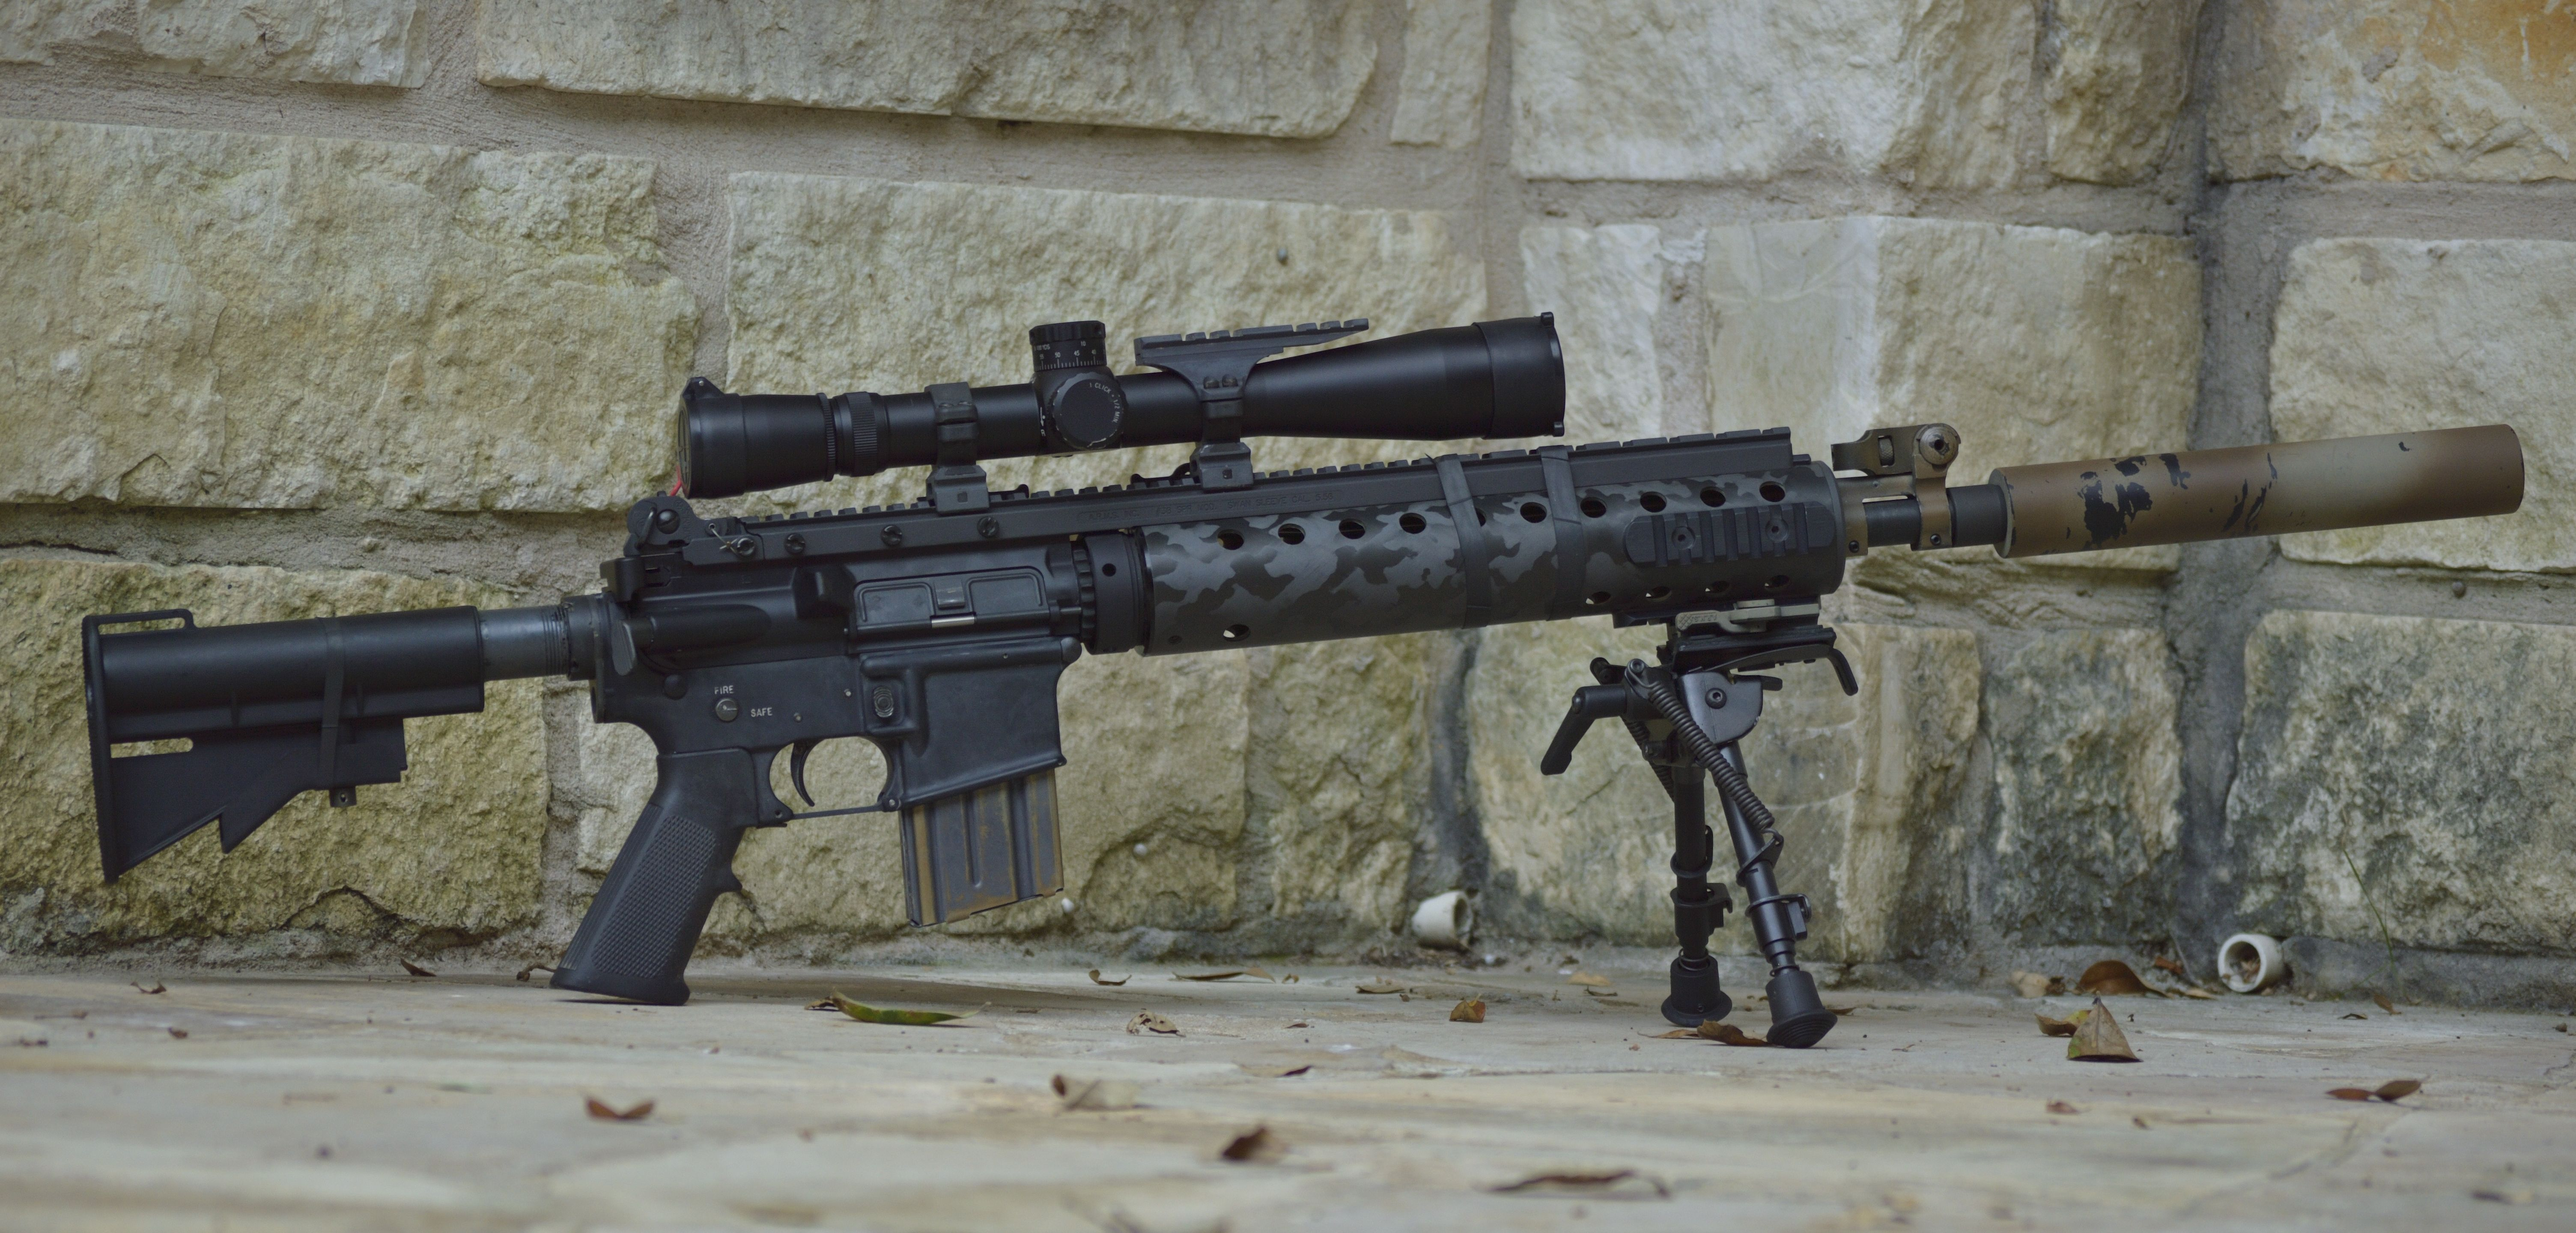 Official Mk12 Mod0, Mod1, ModH Photo and Discussion Thread - Page 1336 - AR15.COM